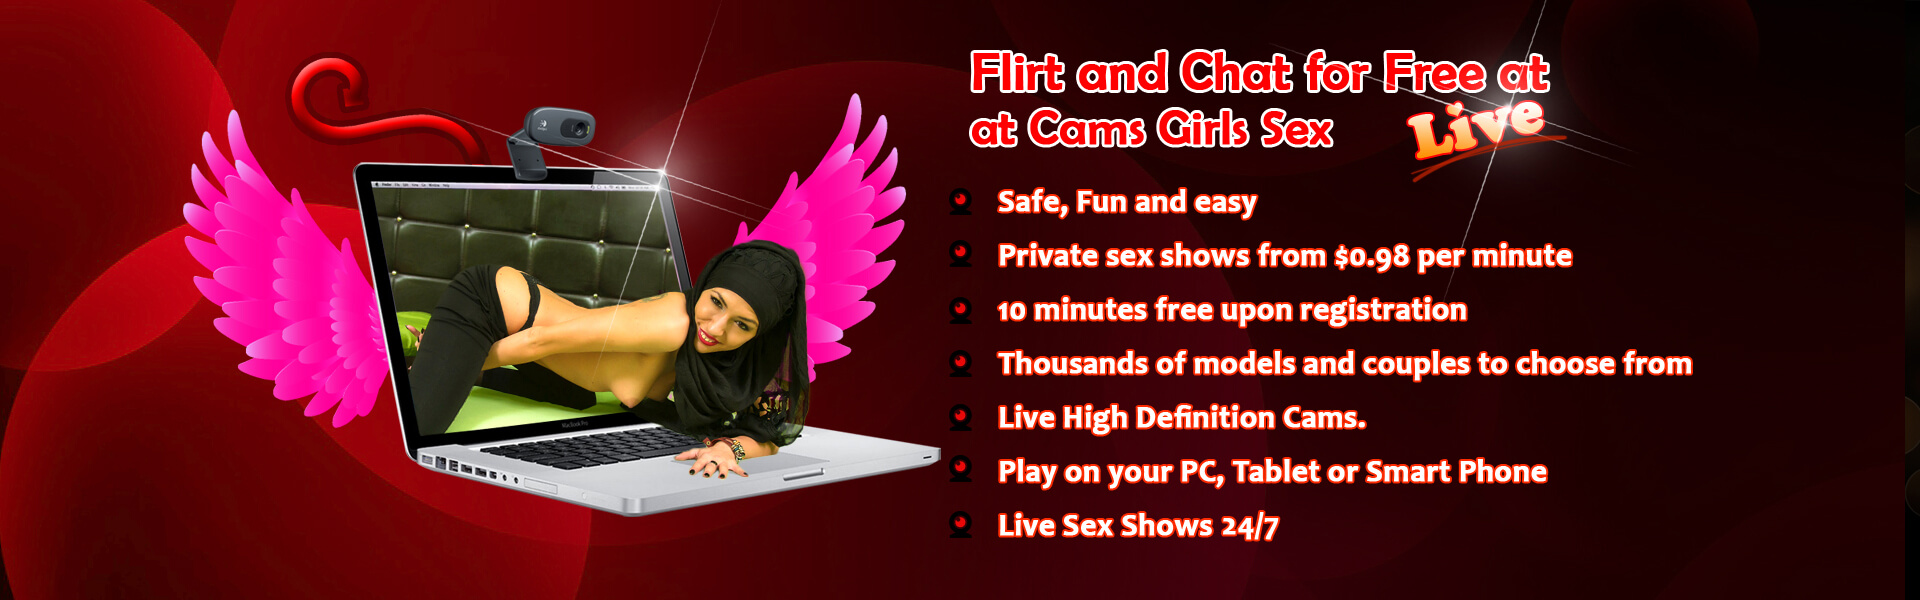 muslim chat cam to cam sex chat